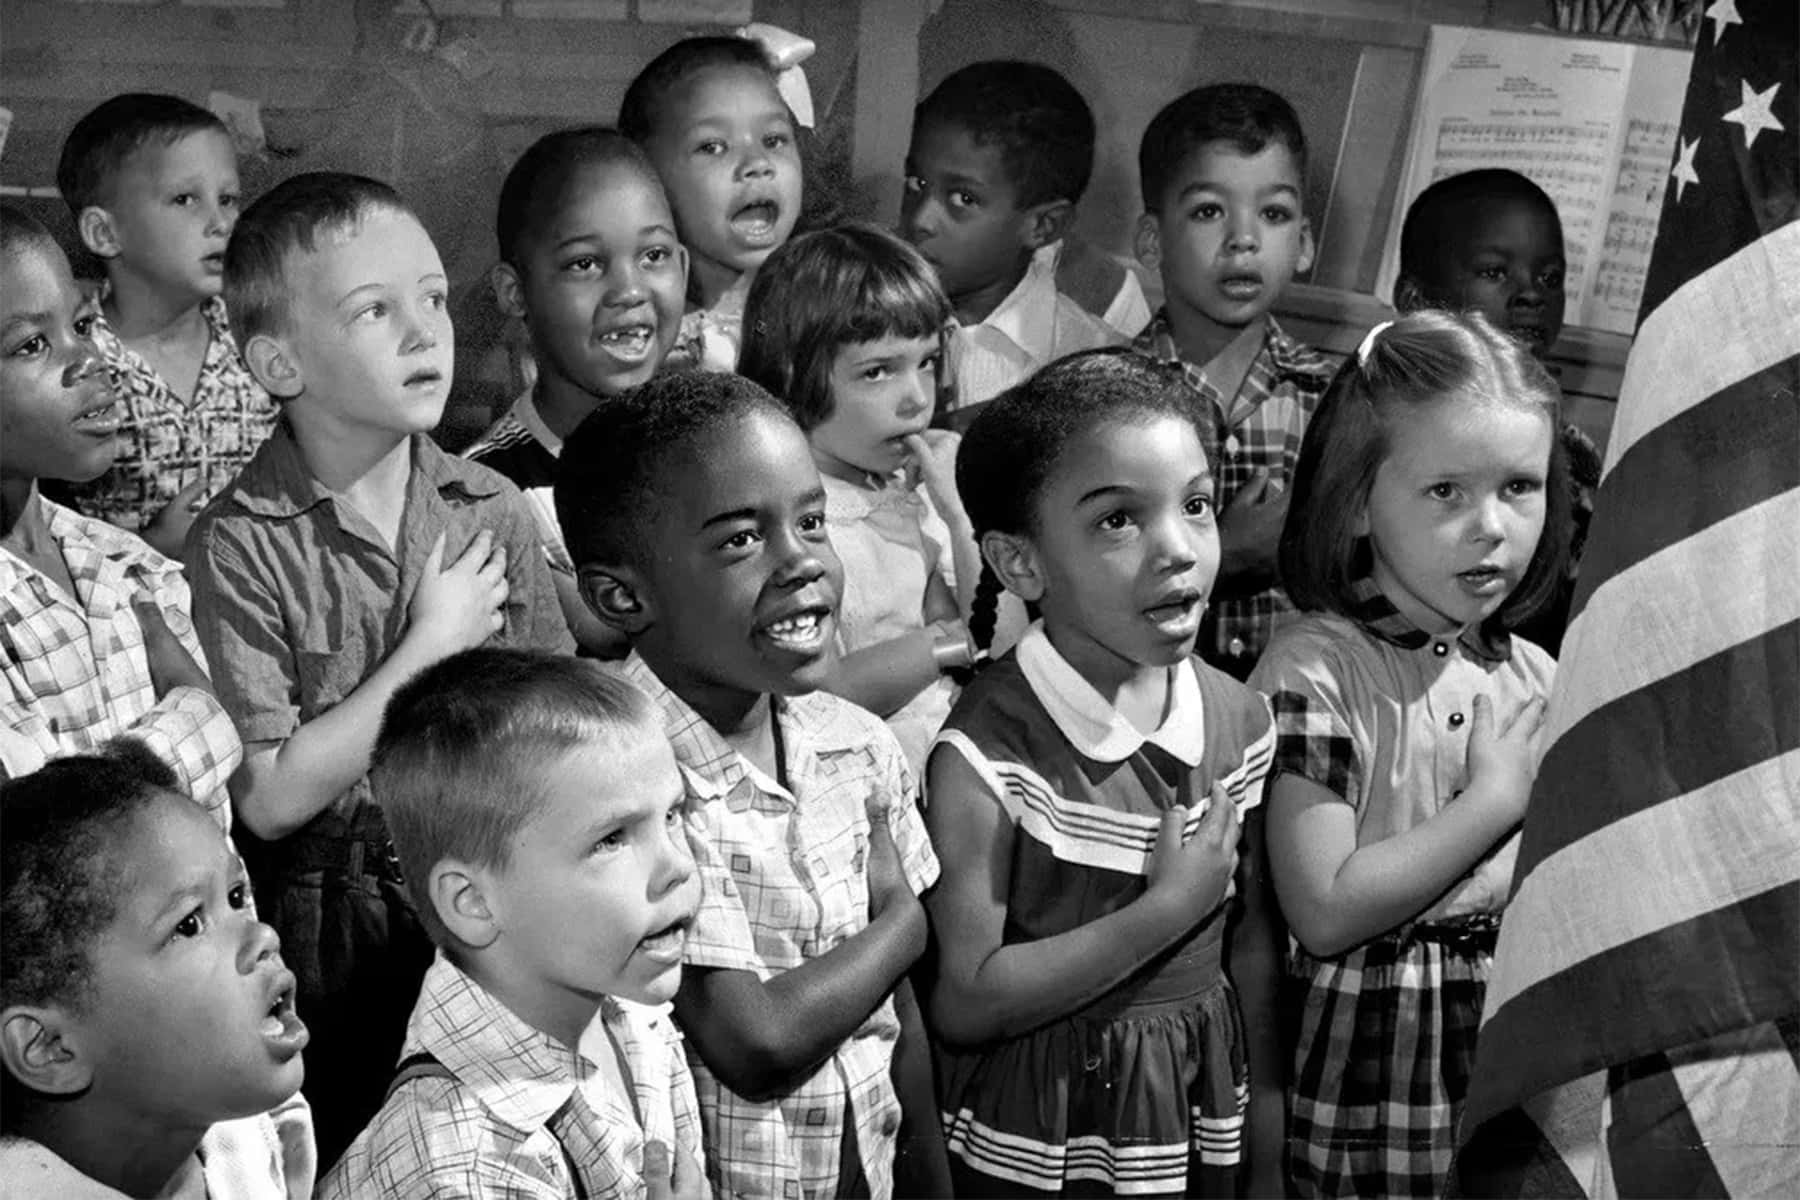 Children saying the Pledge of Allegiance in front of an American flag.